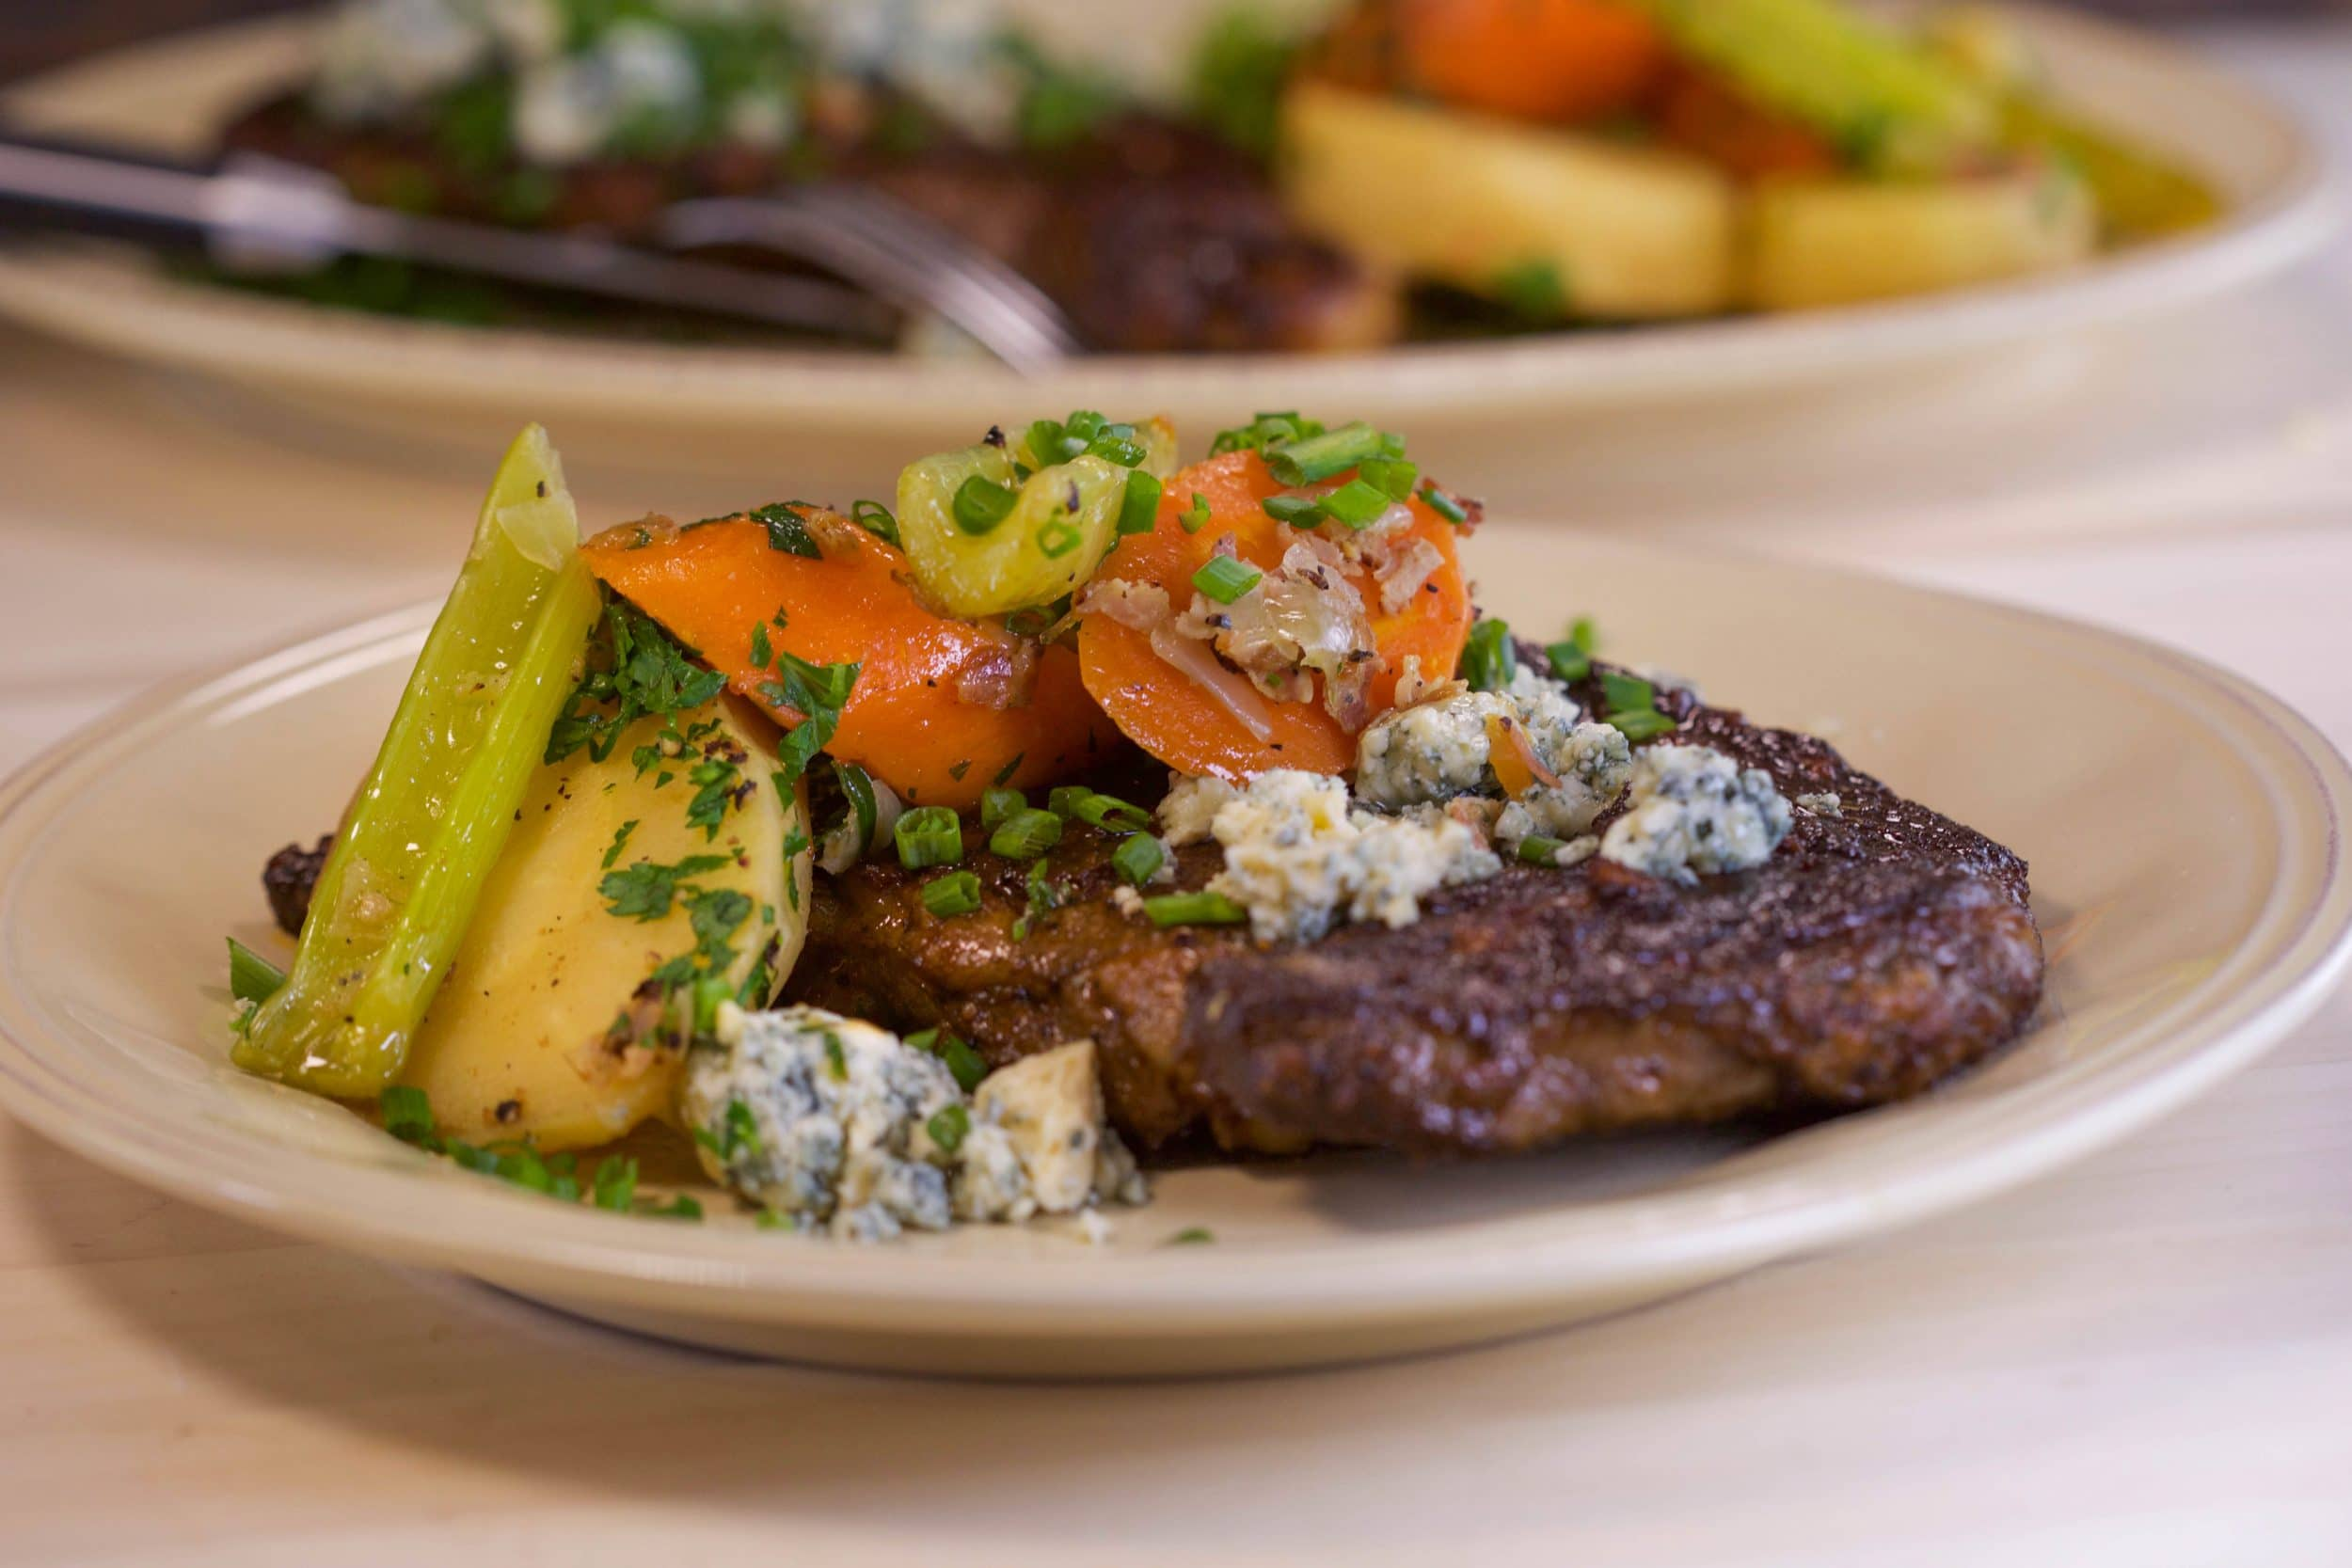 Buffalo Steaks with Braised Celery, Carrots and Parsnips